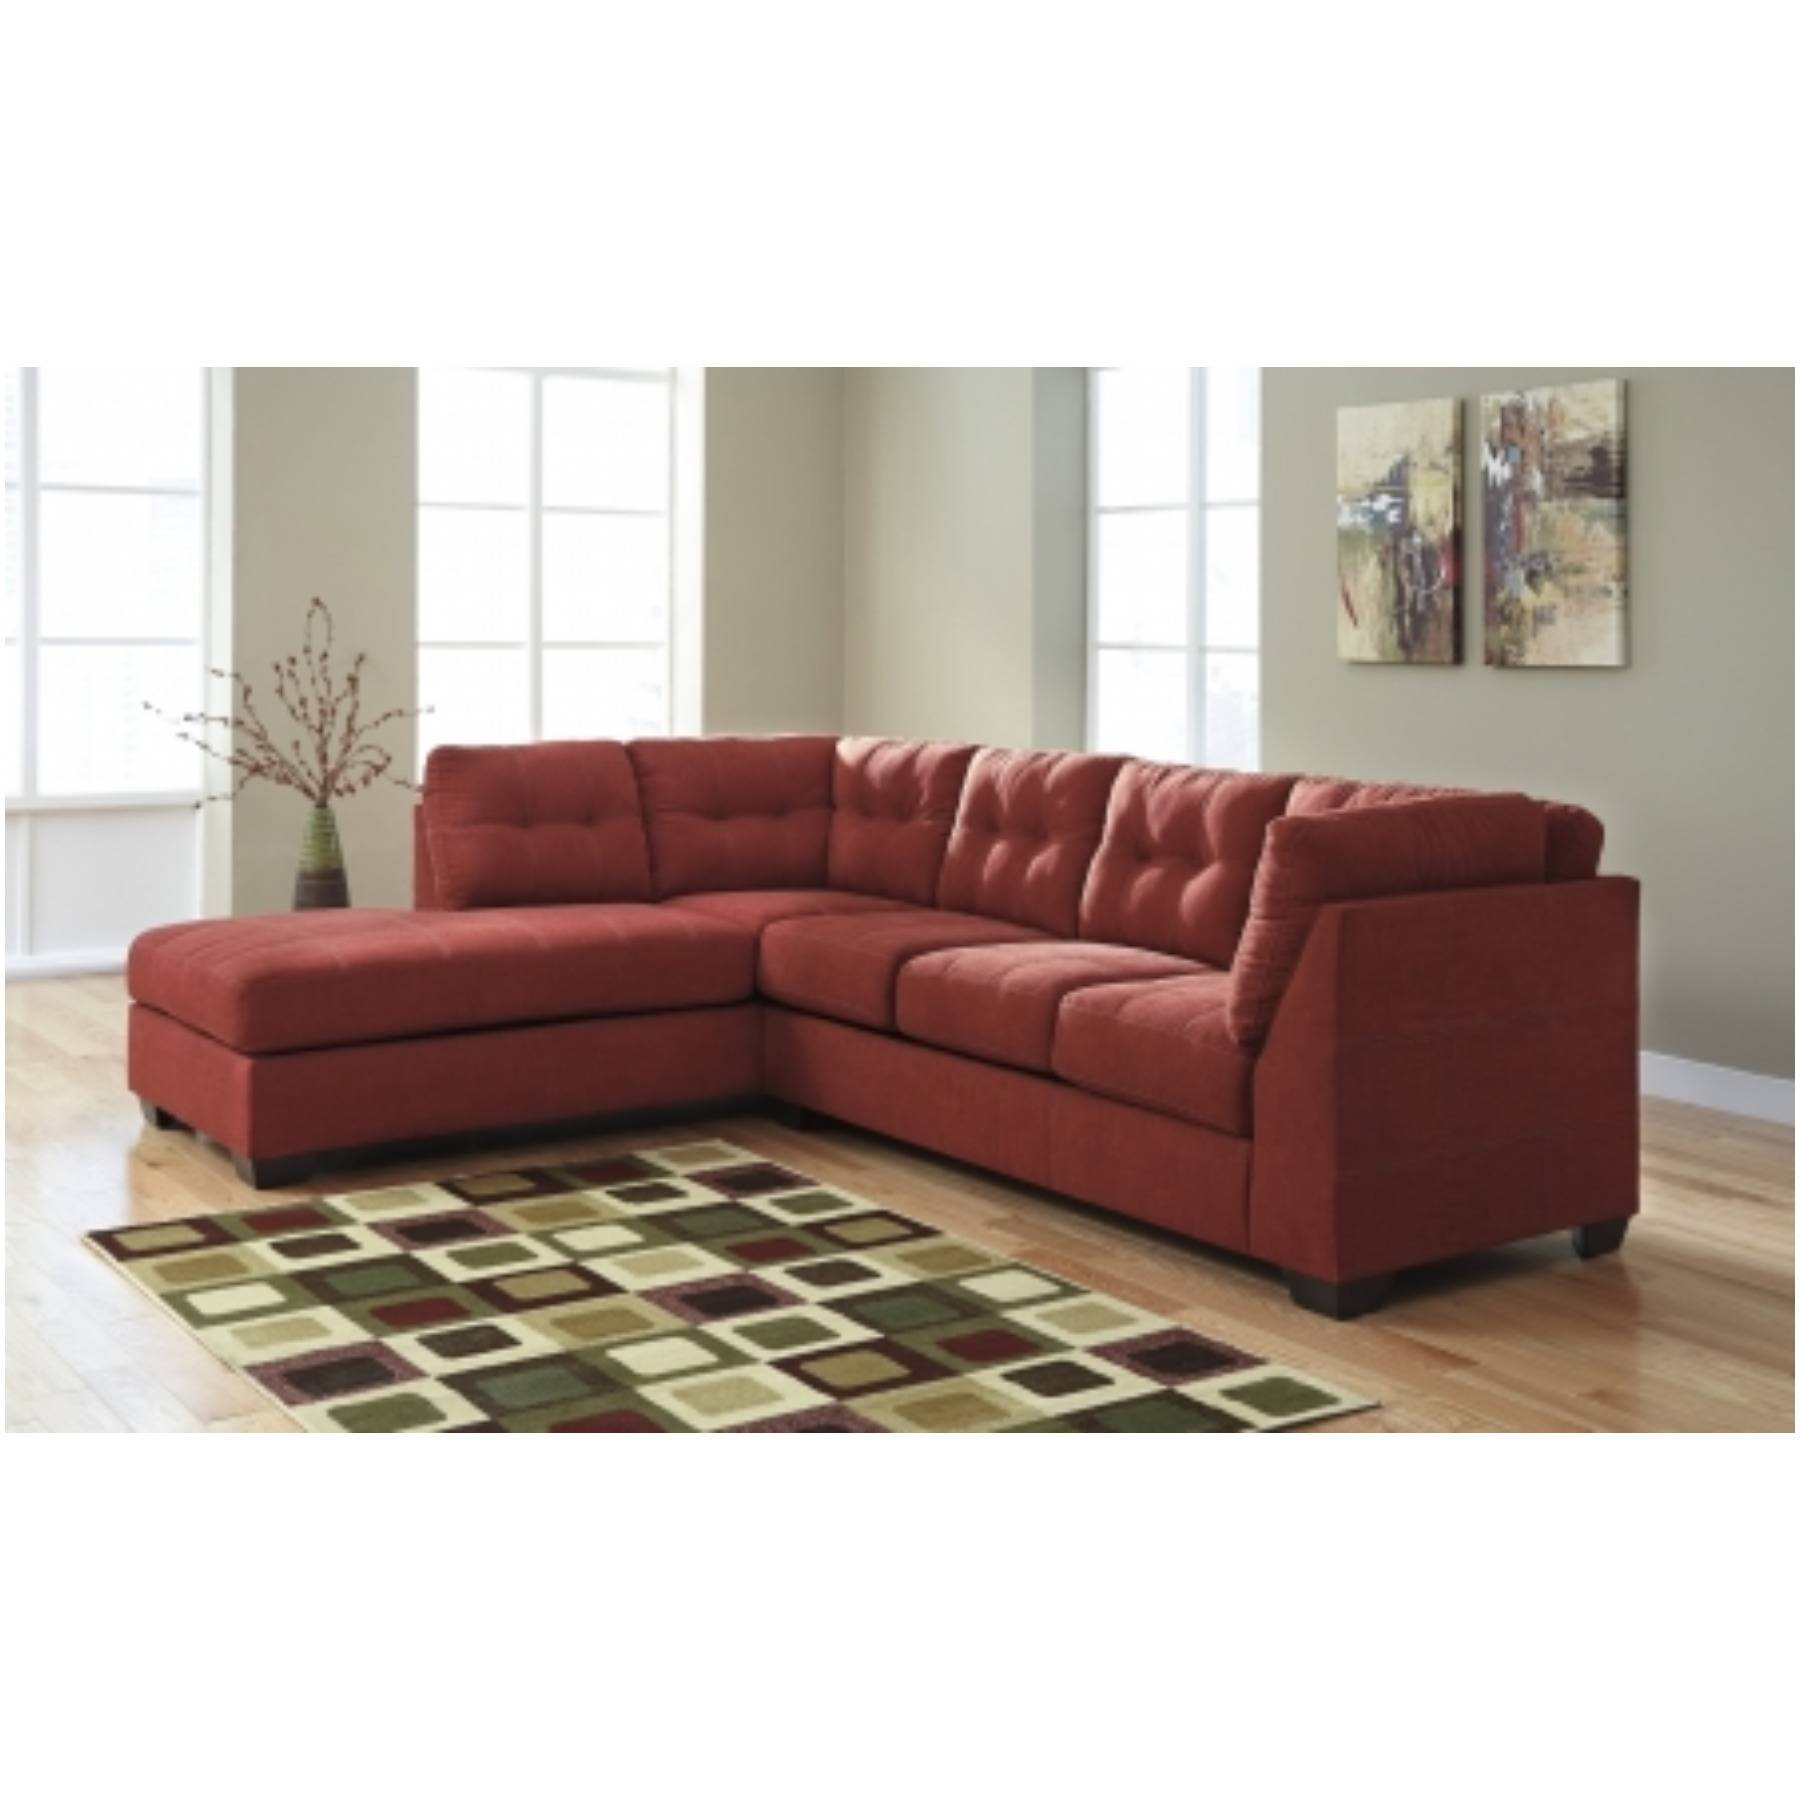 American Made Sectional Sofas - Techieblogie intended for American Made Sectional Sofas (Image 9 of 30)